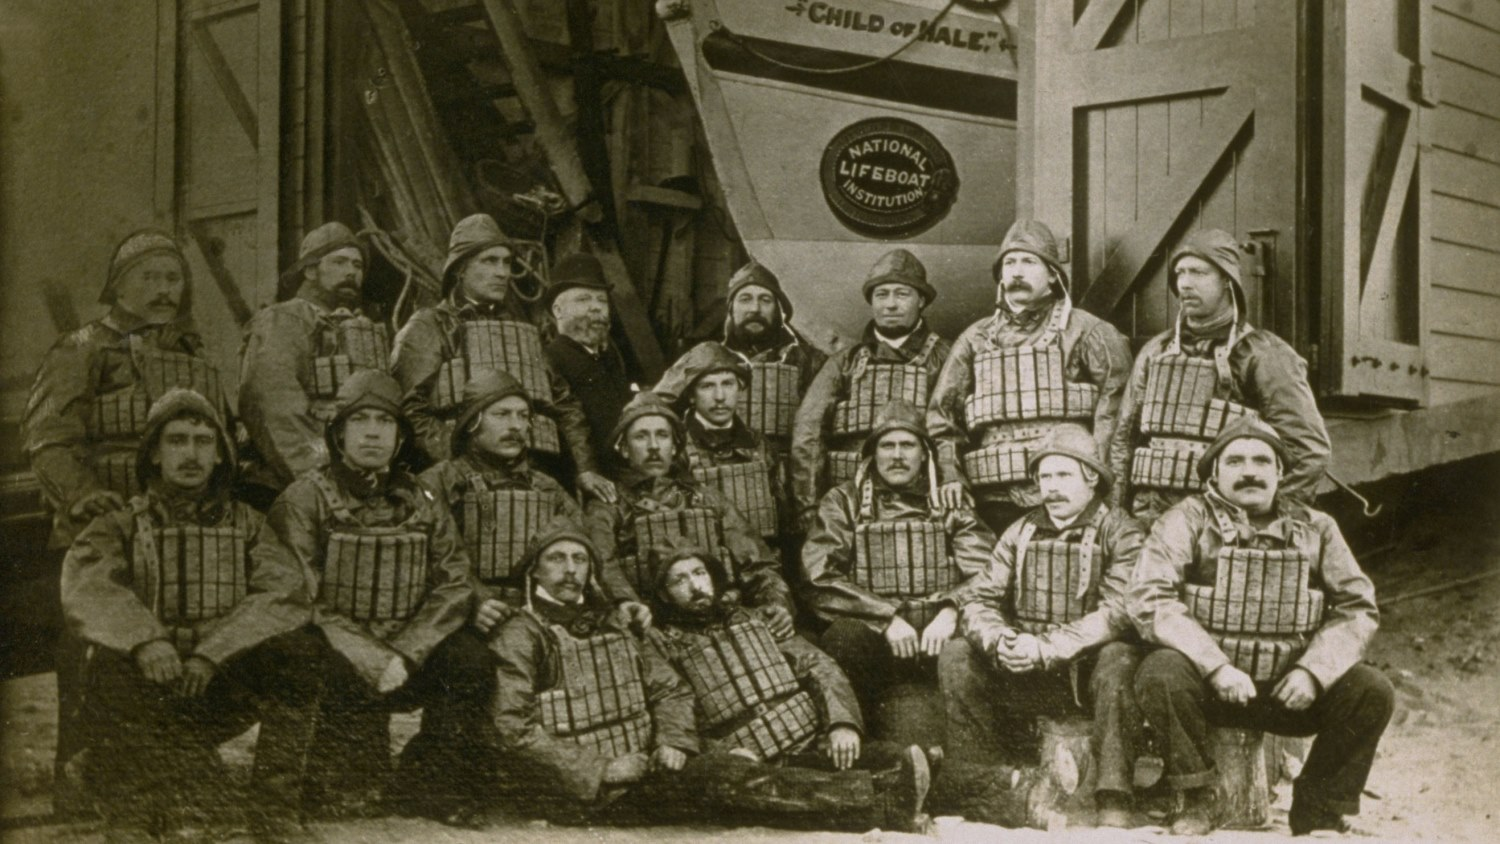 Crew of Fleetwood station wearing cork lifejackets and sou'westers circa 1890.